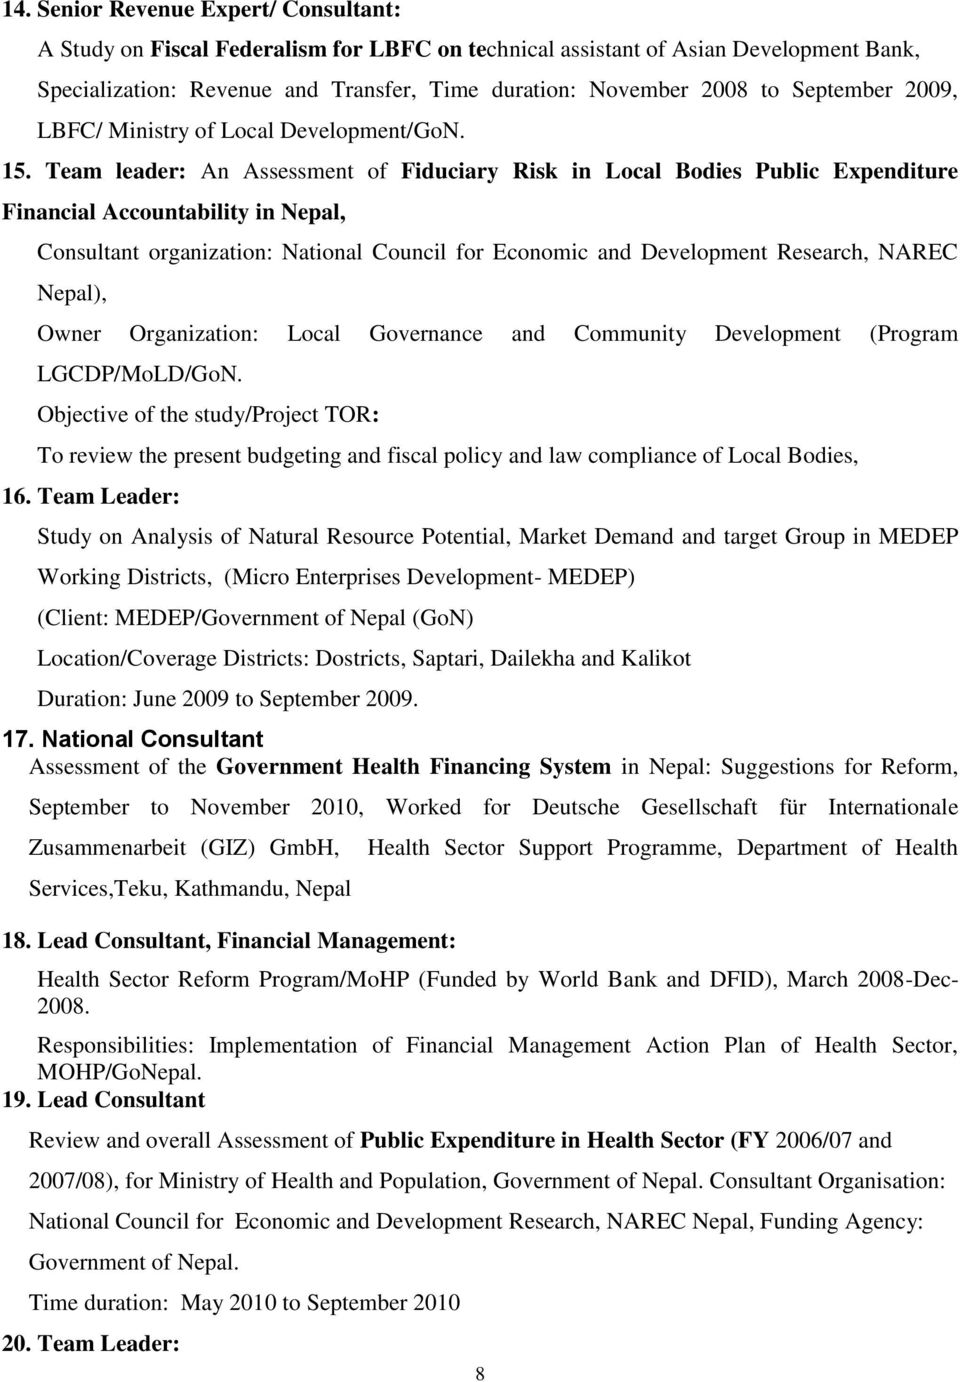 Team leader: An Assessment of Fiduciary Risk in Local Bodies Public Expenditure Financial Accountability in Nepal, Consultant organization: National Council for Economic and Development Research,